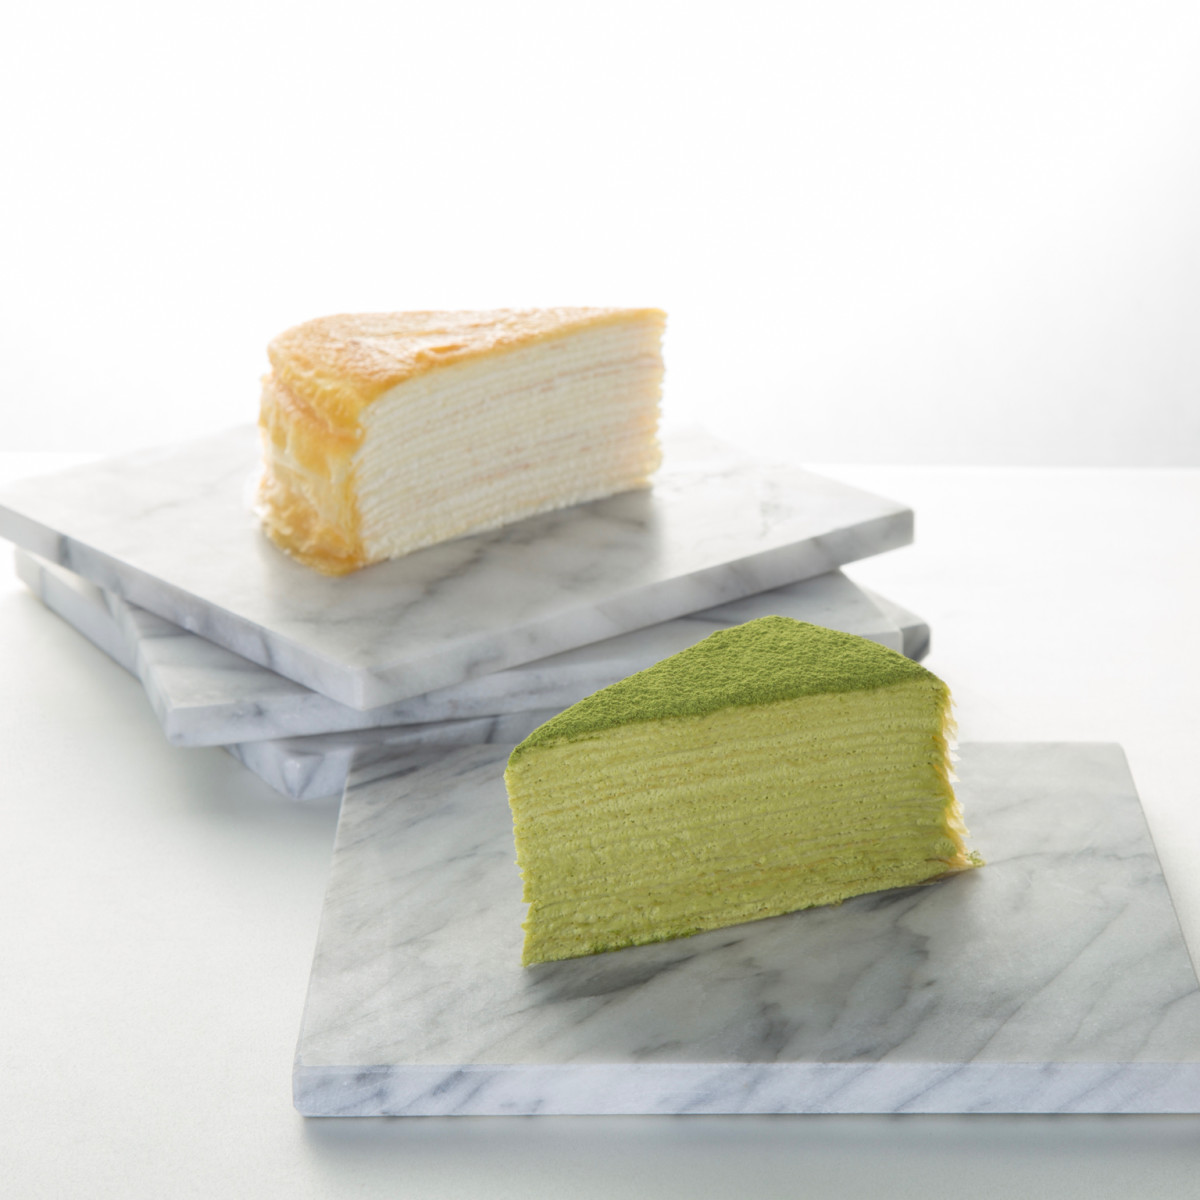 Lady M crepe cake slices